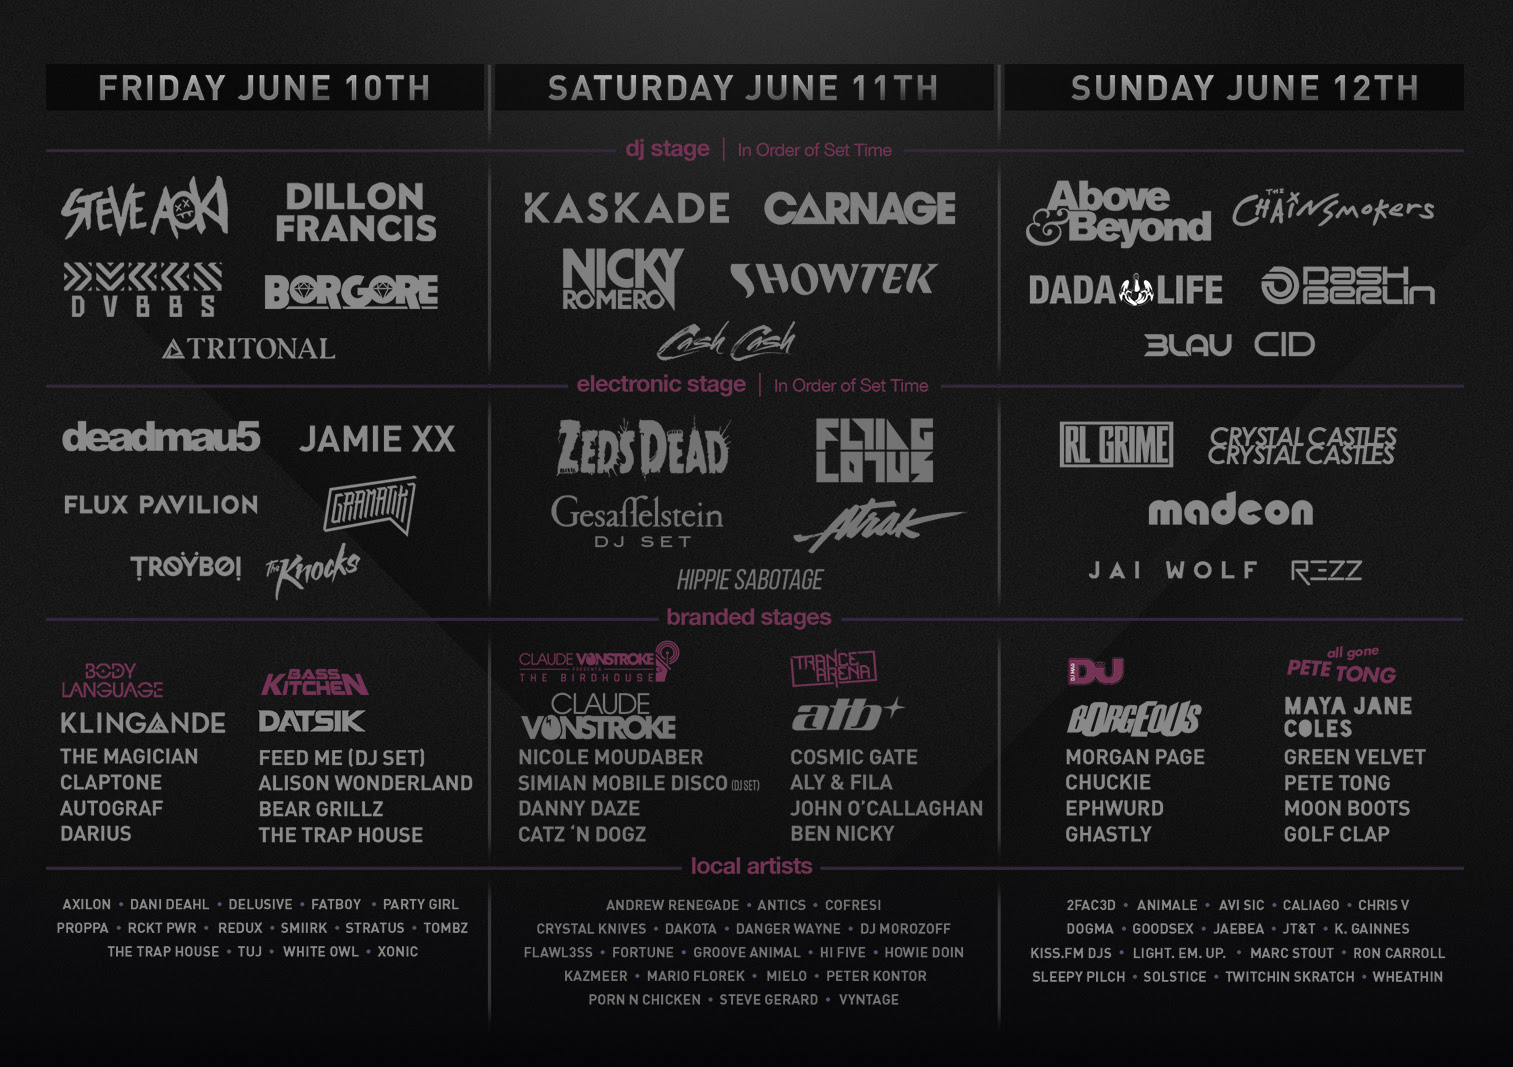 Spring Awakening 2016 daily lineup. Photo by: Spring Awakening